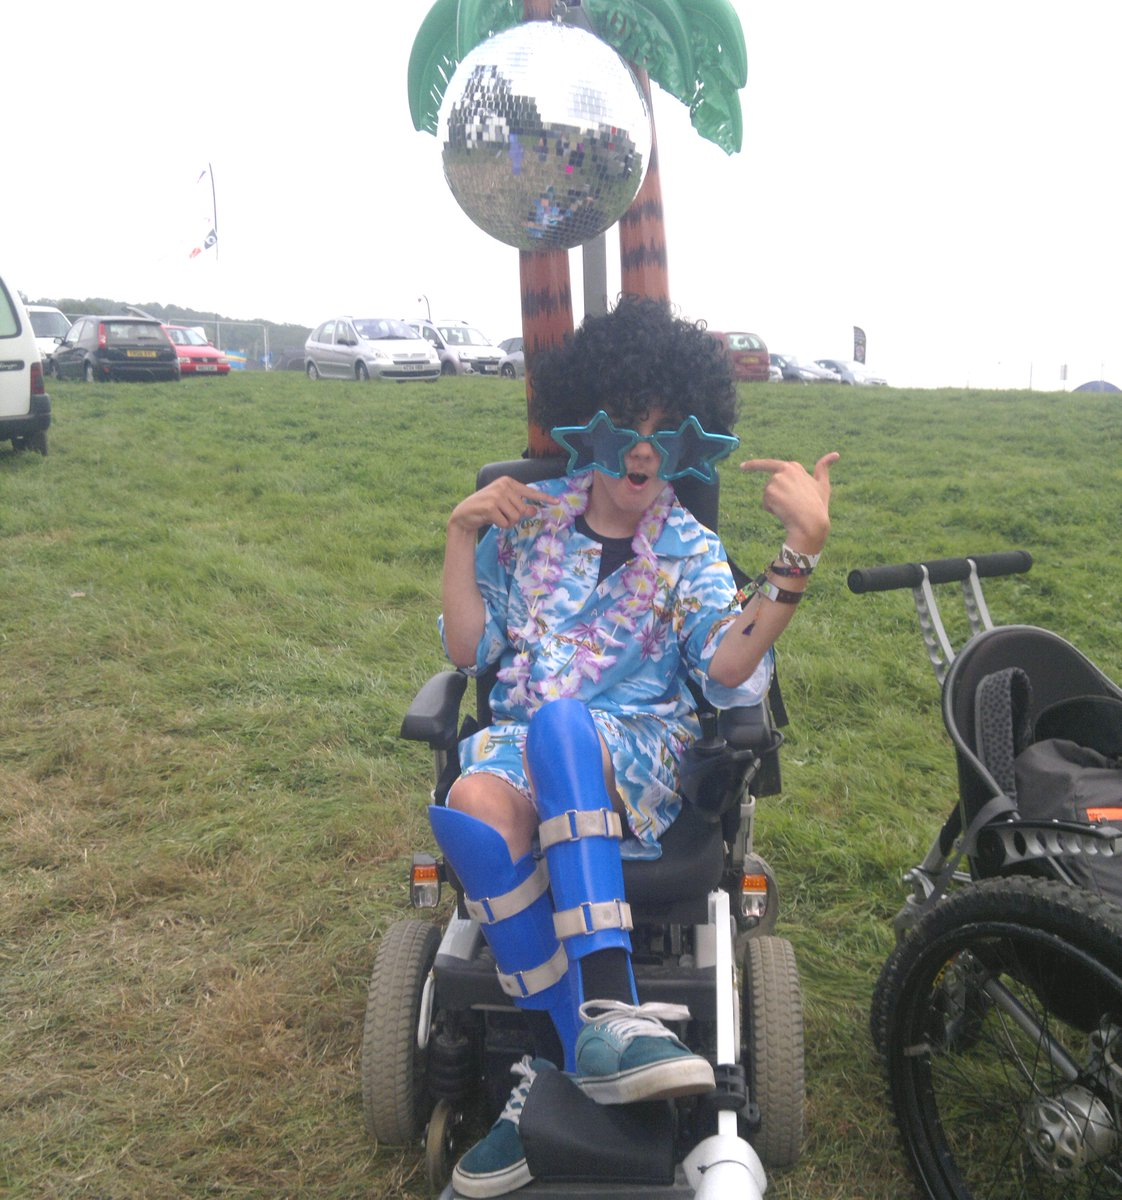 It's #Glastonbury today & we love this pic of James who went to a festival with a disco ball on his #wheelchair! http://t.co/ia0rOHKrJf